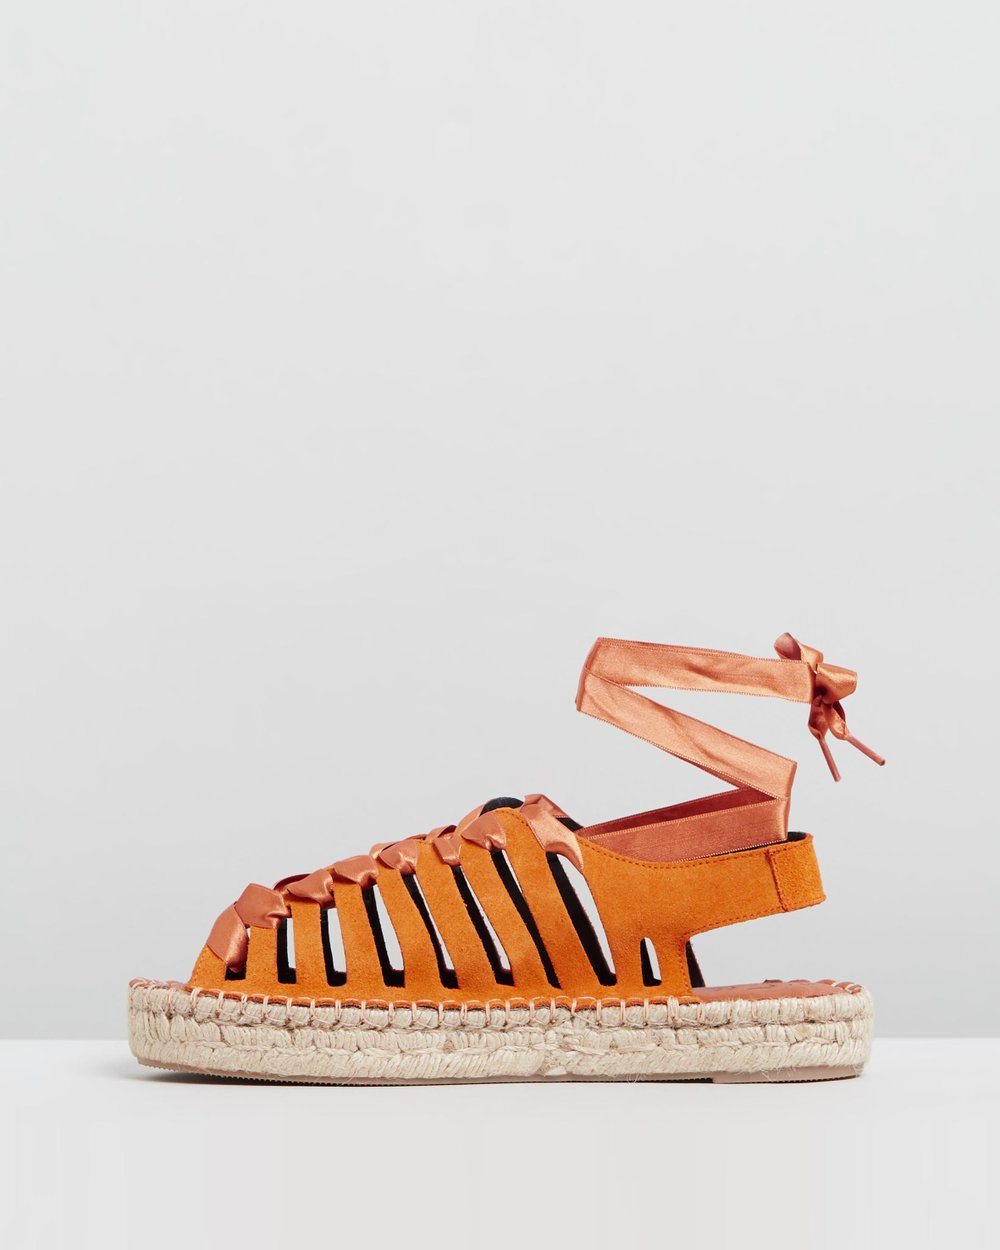 9eb5f8cec4cd8f Formentera by Alohas Sandals Online